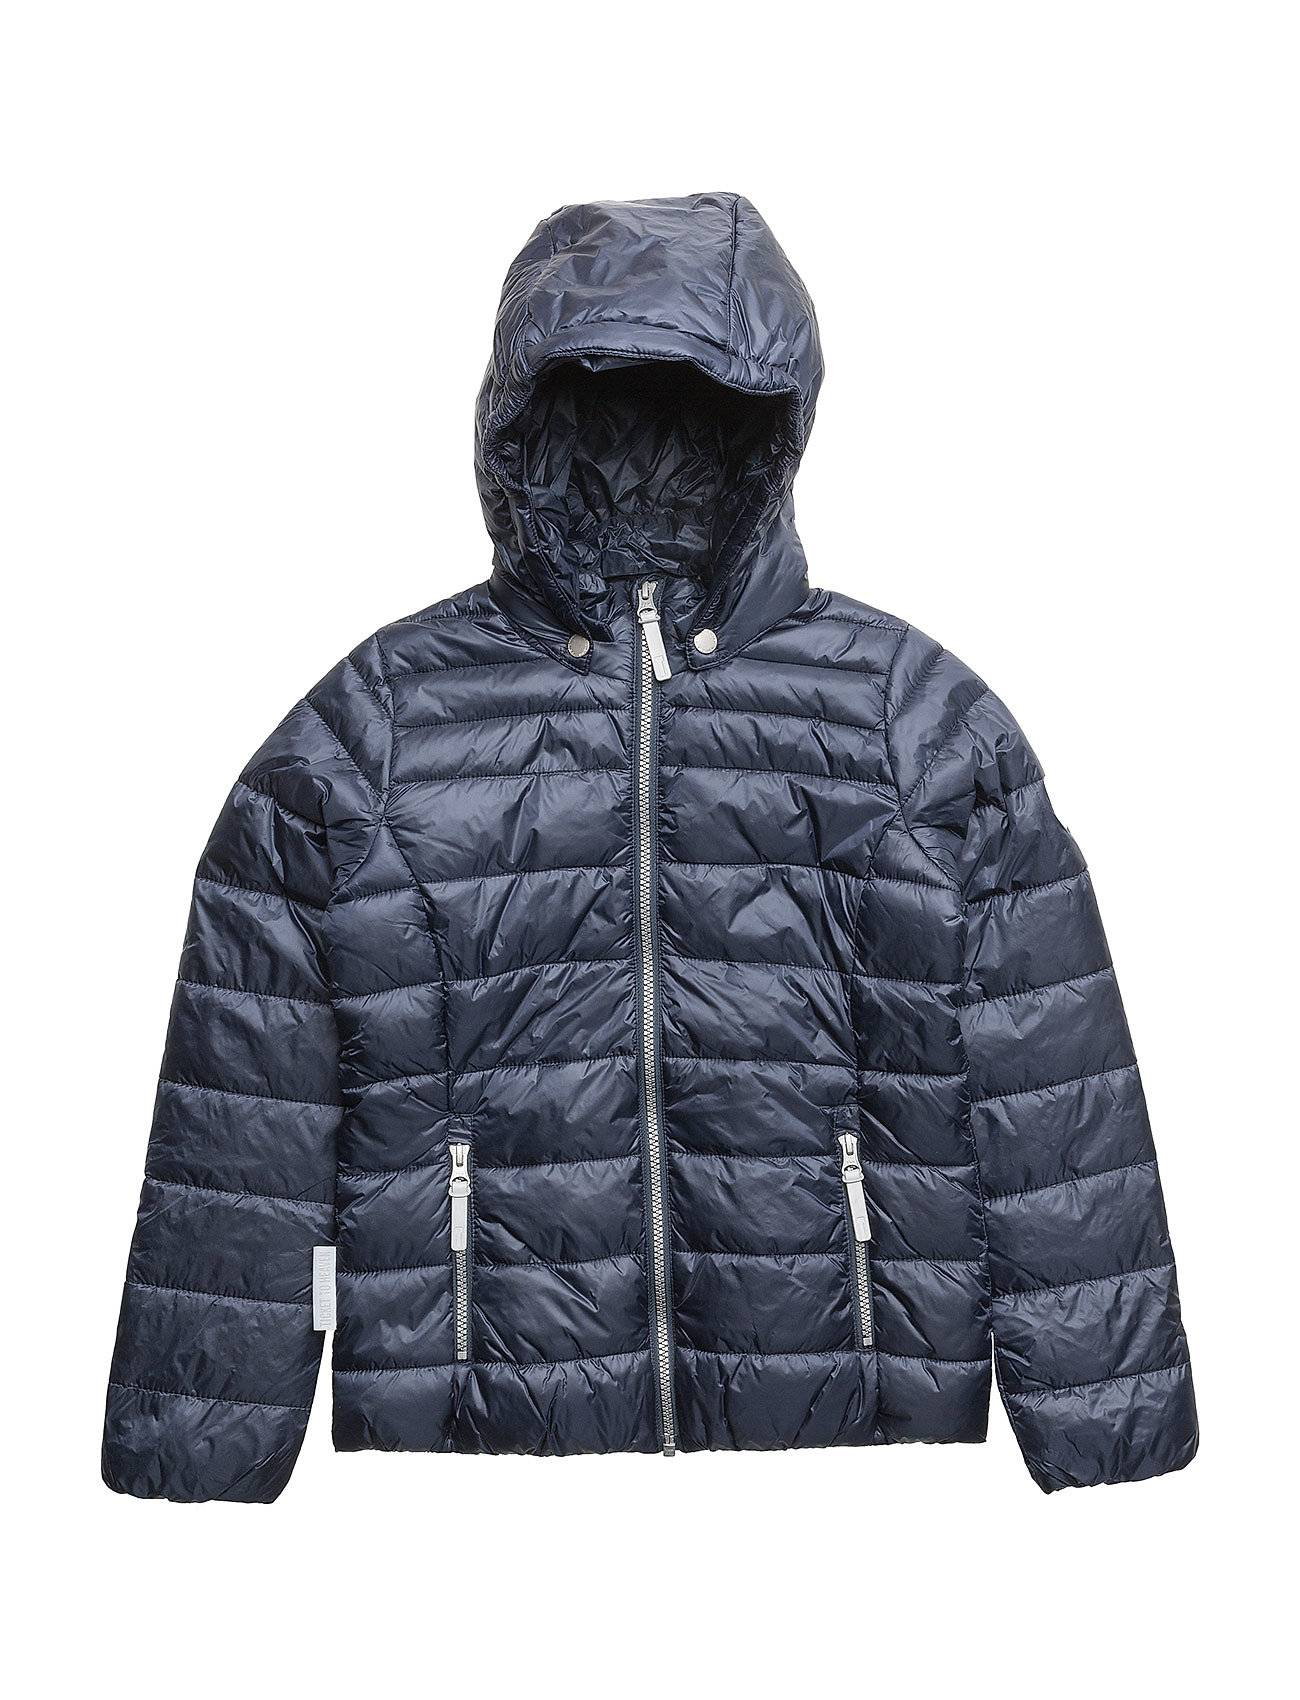 Ticket to Heaven Jacket Lightweight Padding Comerzo With Detachable Hood